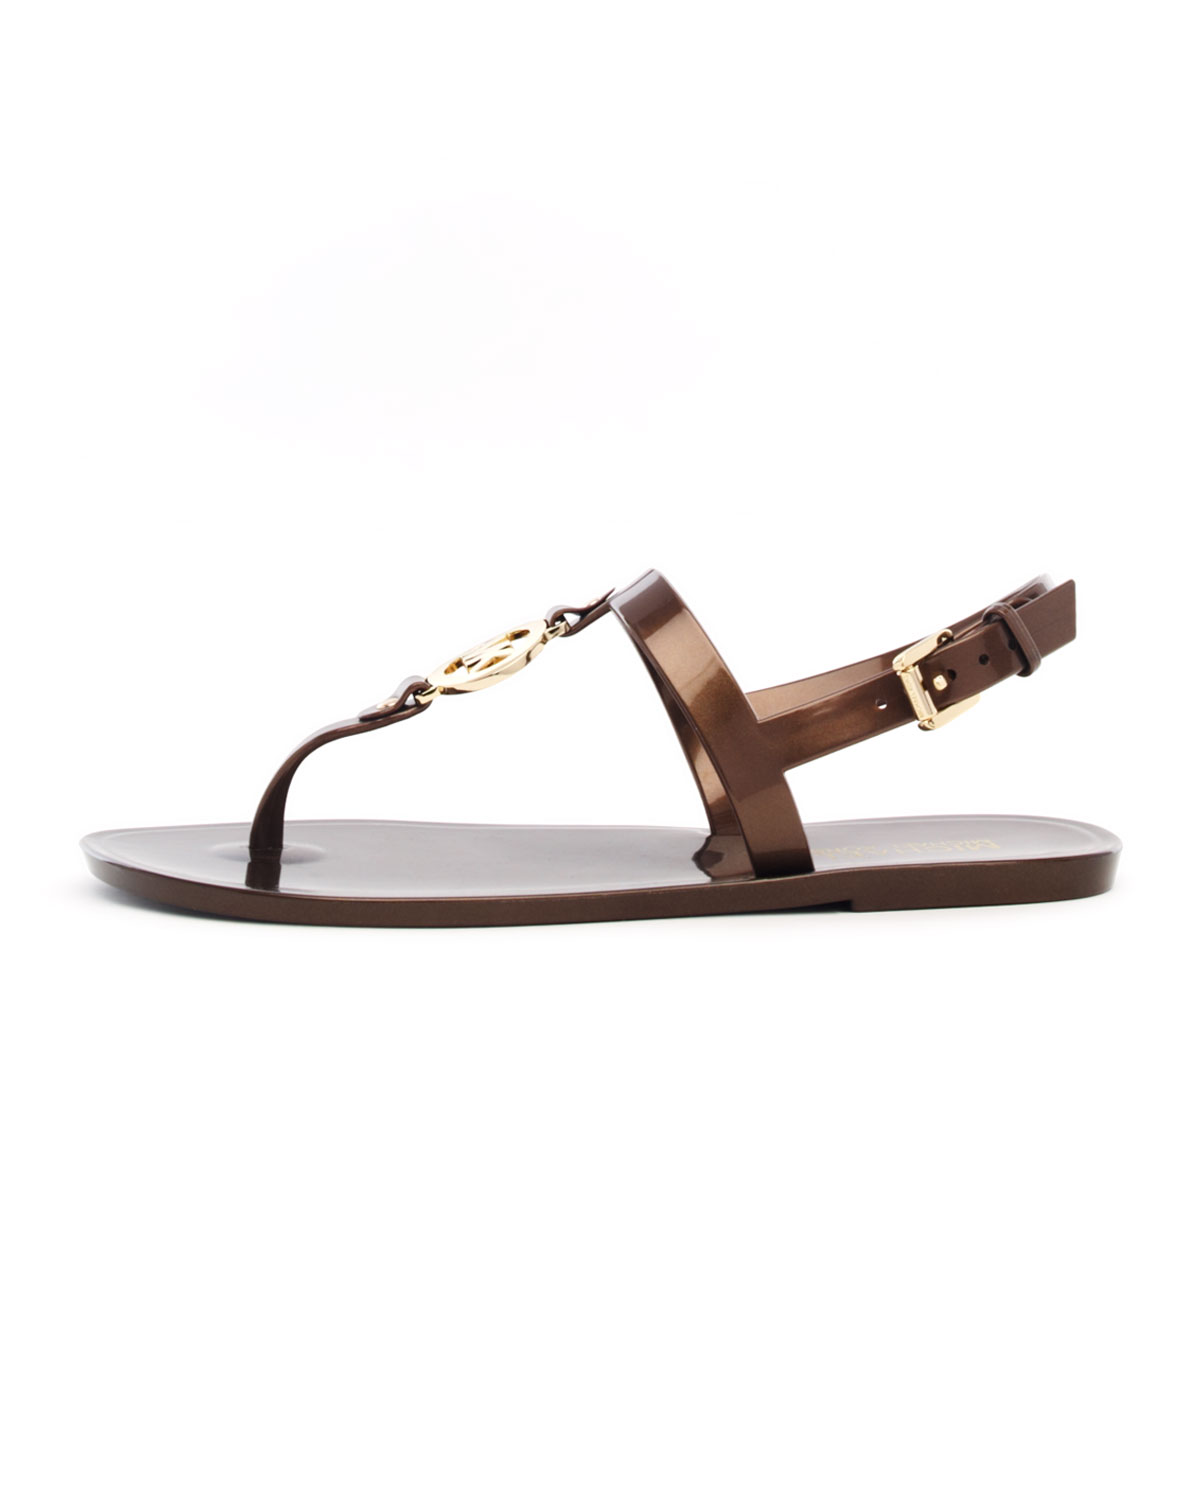 af119ef5e Lyst - Michael Kors Sondra Mk Jelly Thong Sandal in Brown